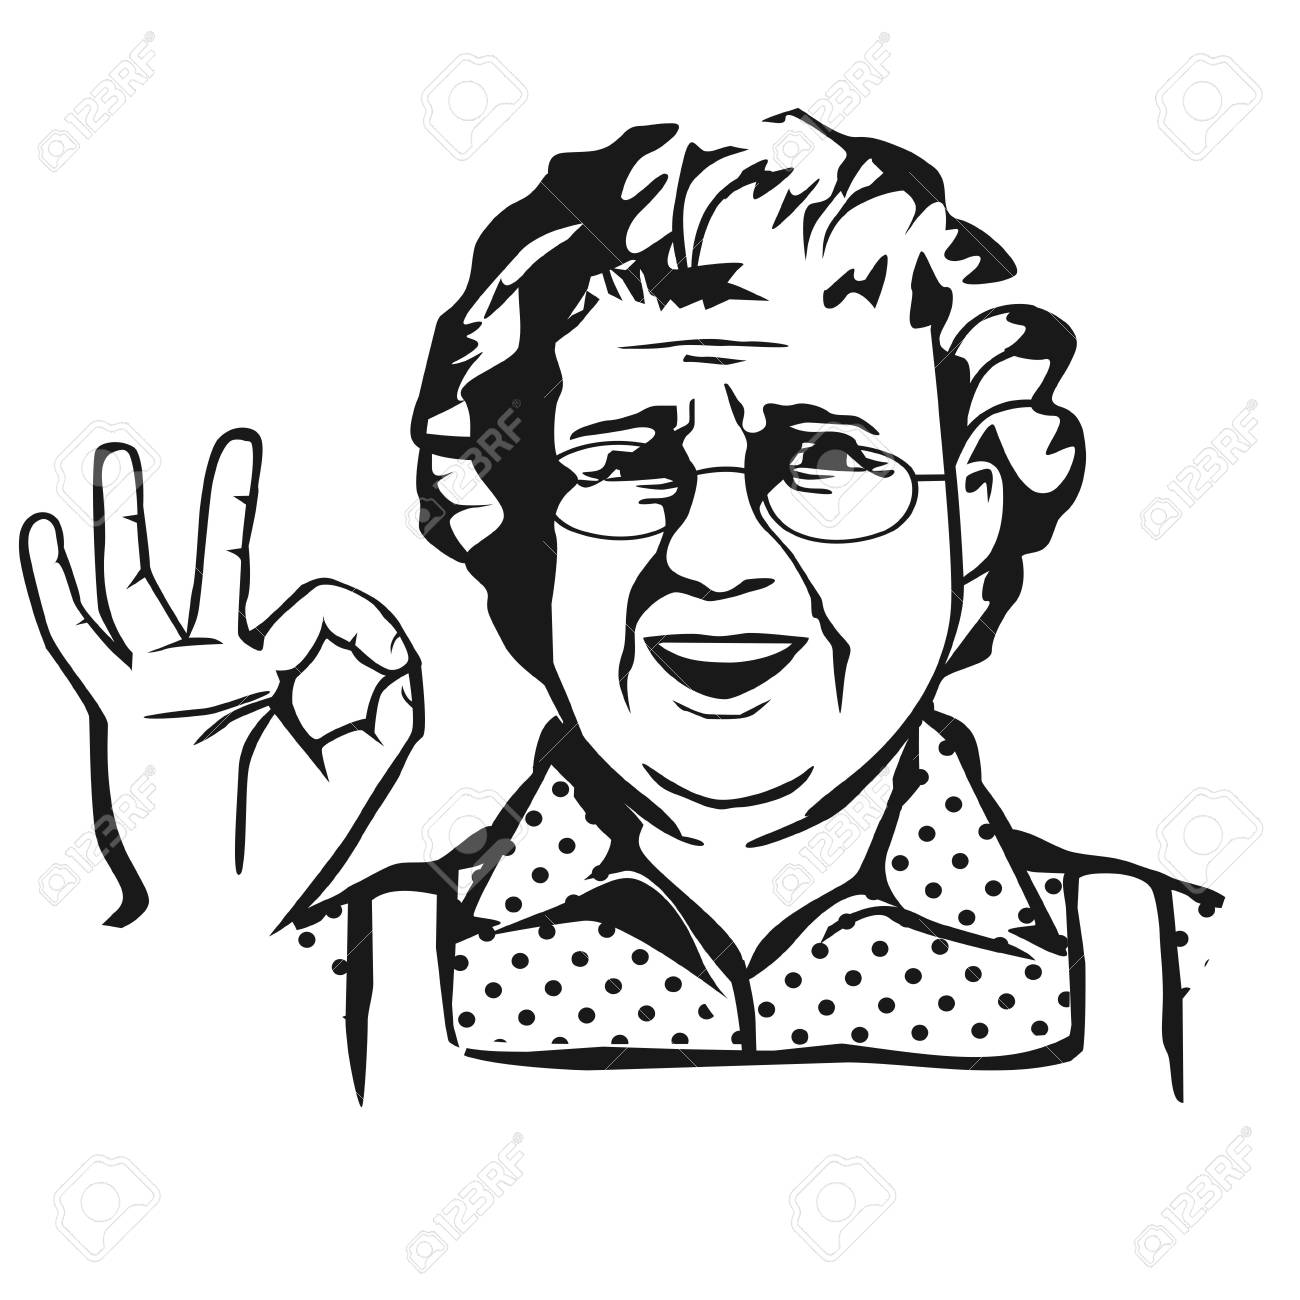 Clipart of elderly african american woman wearing glasses jpg black and white library Old Lady With Glasses Showing OK. Isolated #513140 - Clipartimage.com jpg black and white library